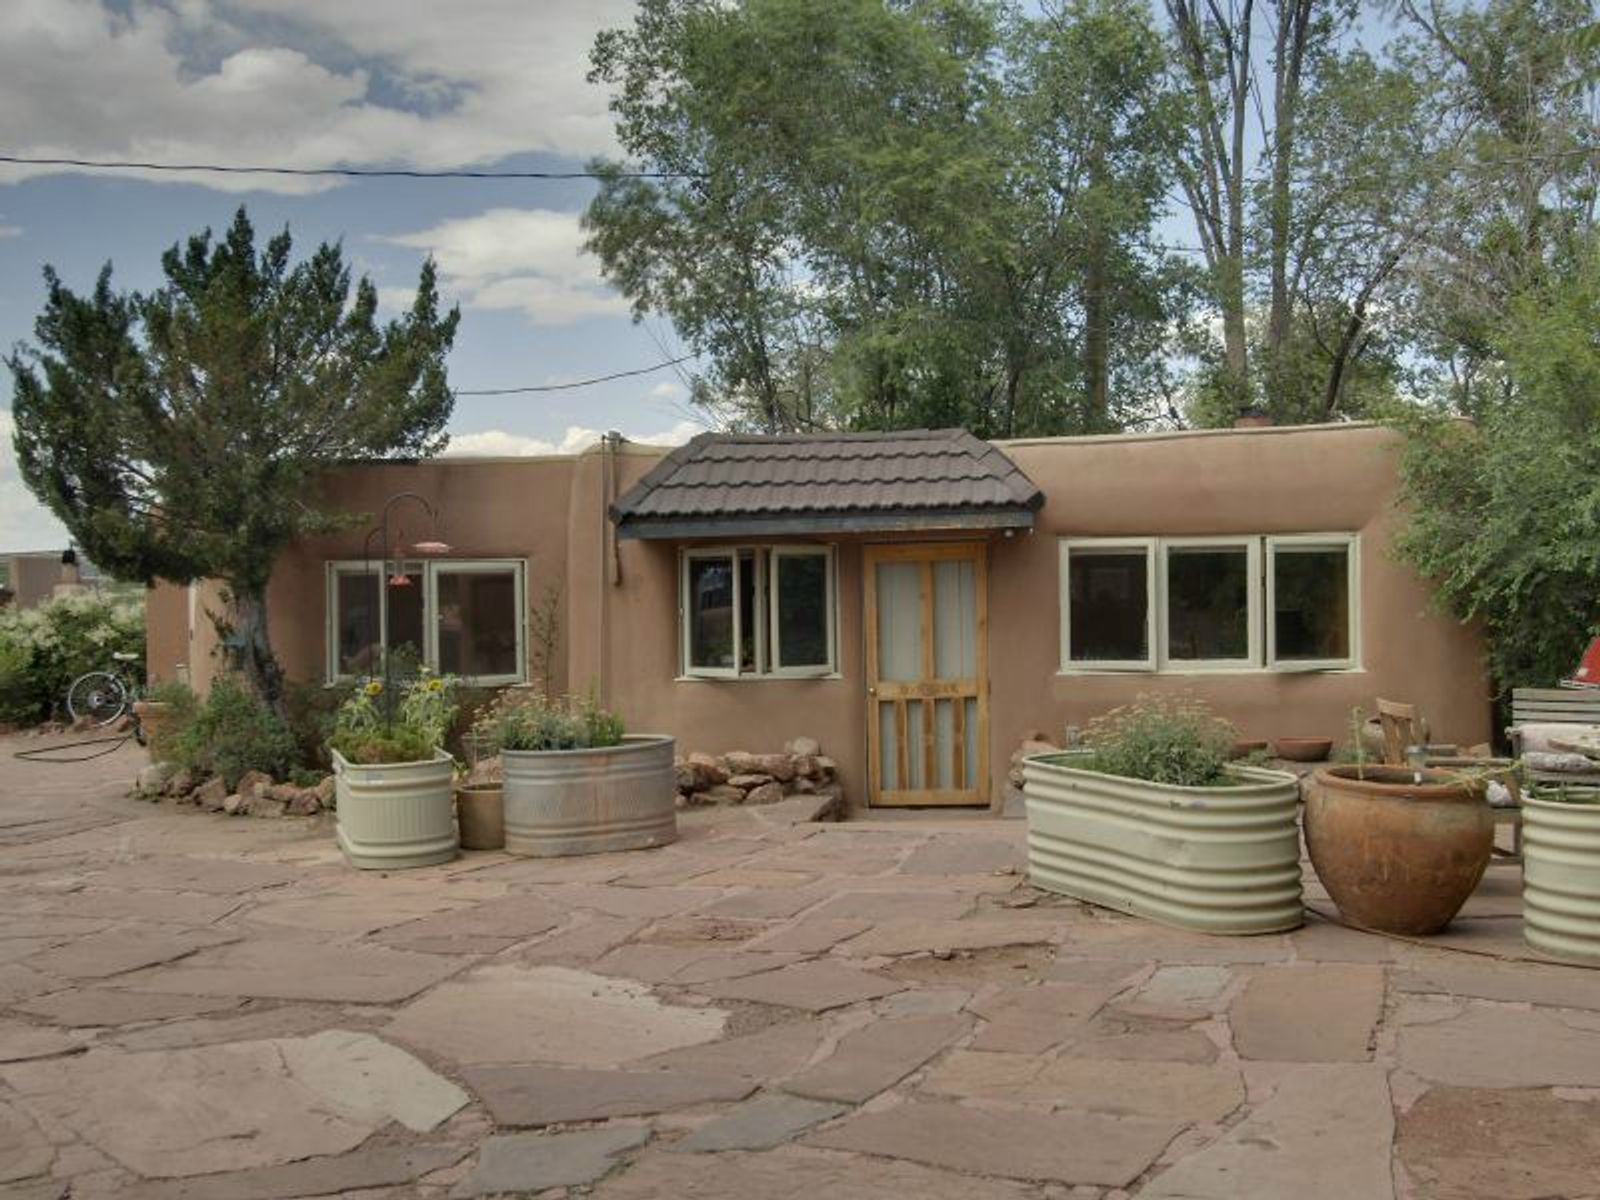 211 E. Berger Street #B, Santa Fe NM Condominium - Santa Fe Real Estate